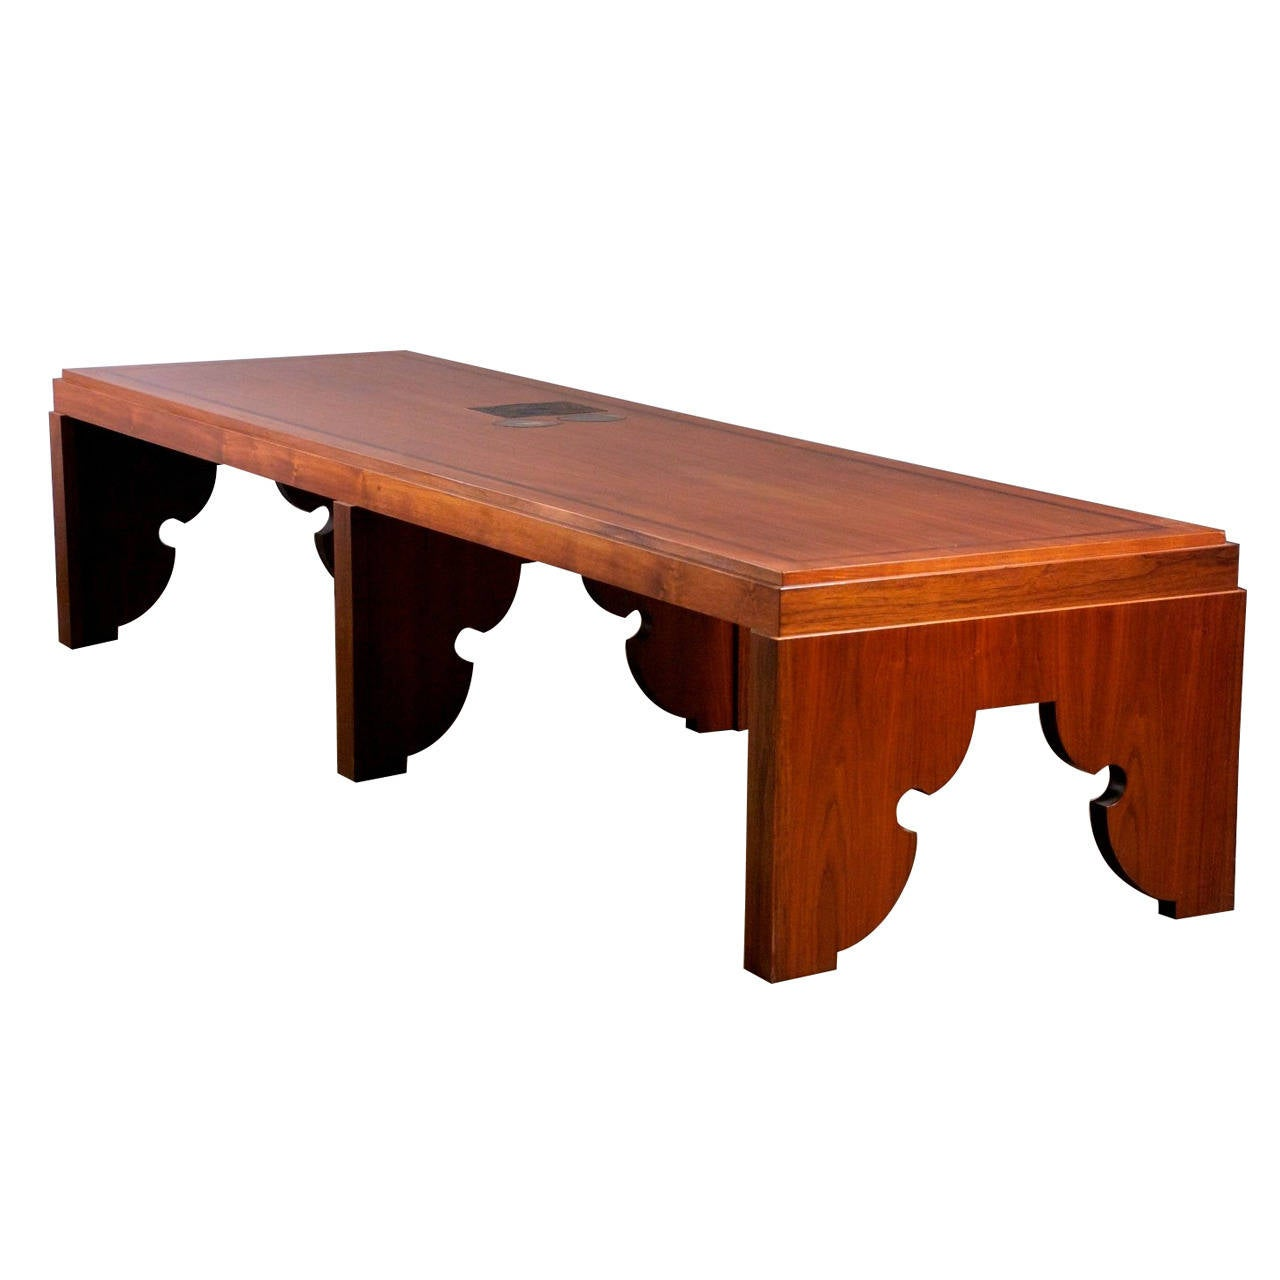 Huge custom center coffee table for sale at 1stdibs for Center table coffee table